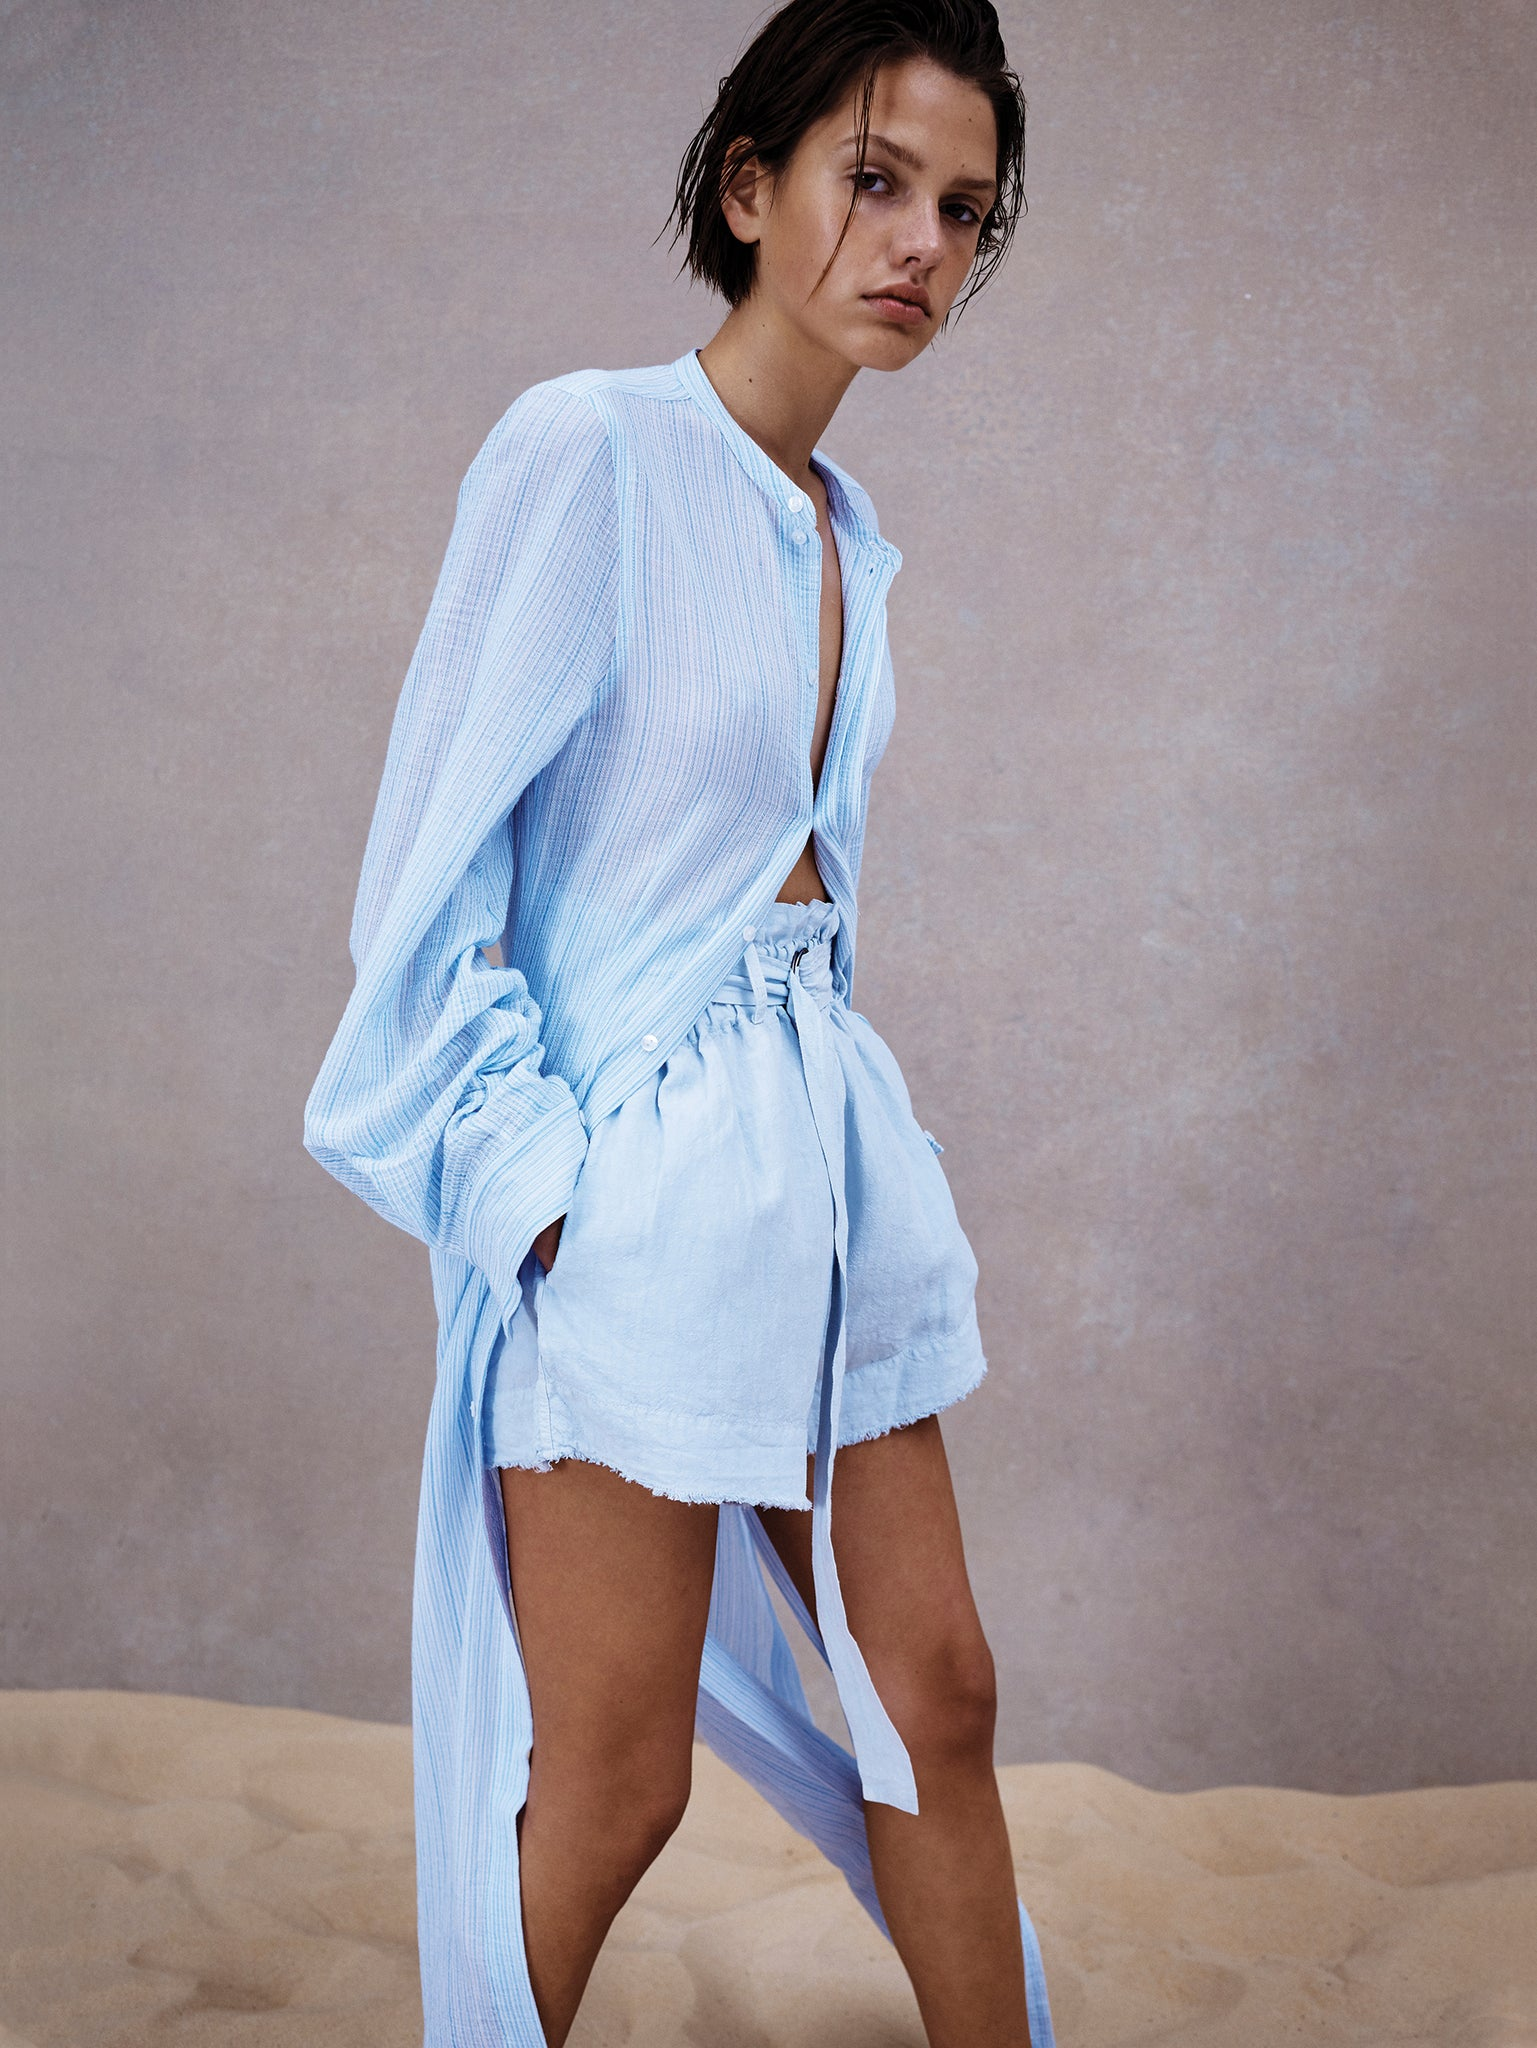 resort 20 capsule look 2